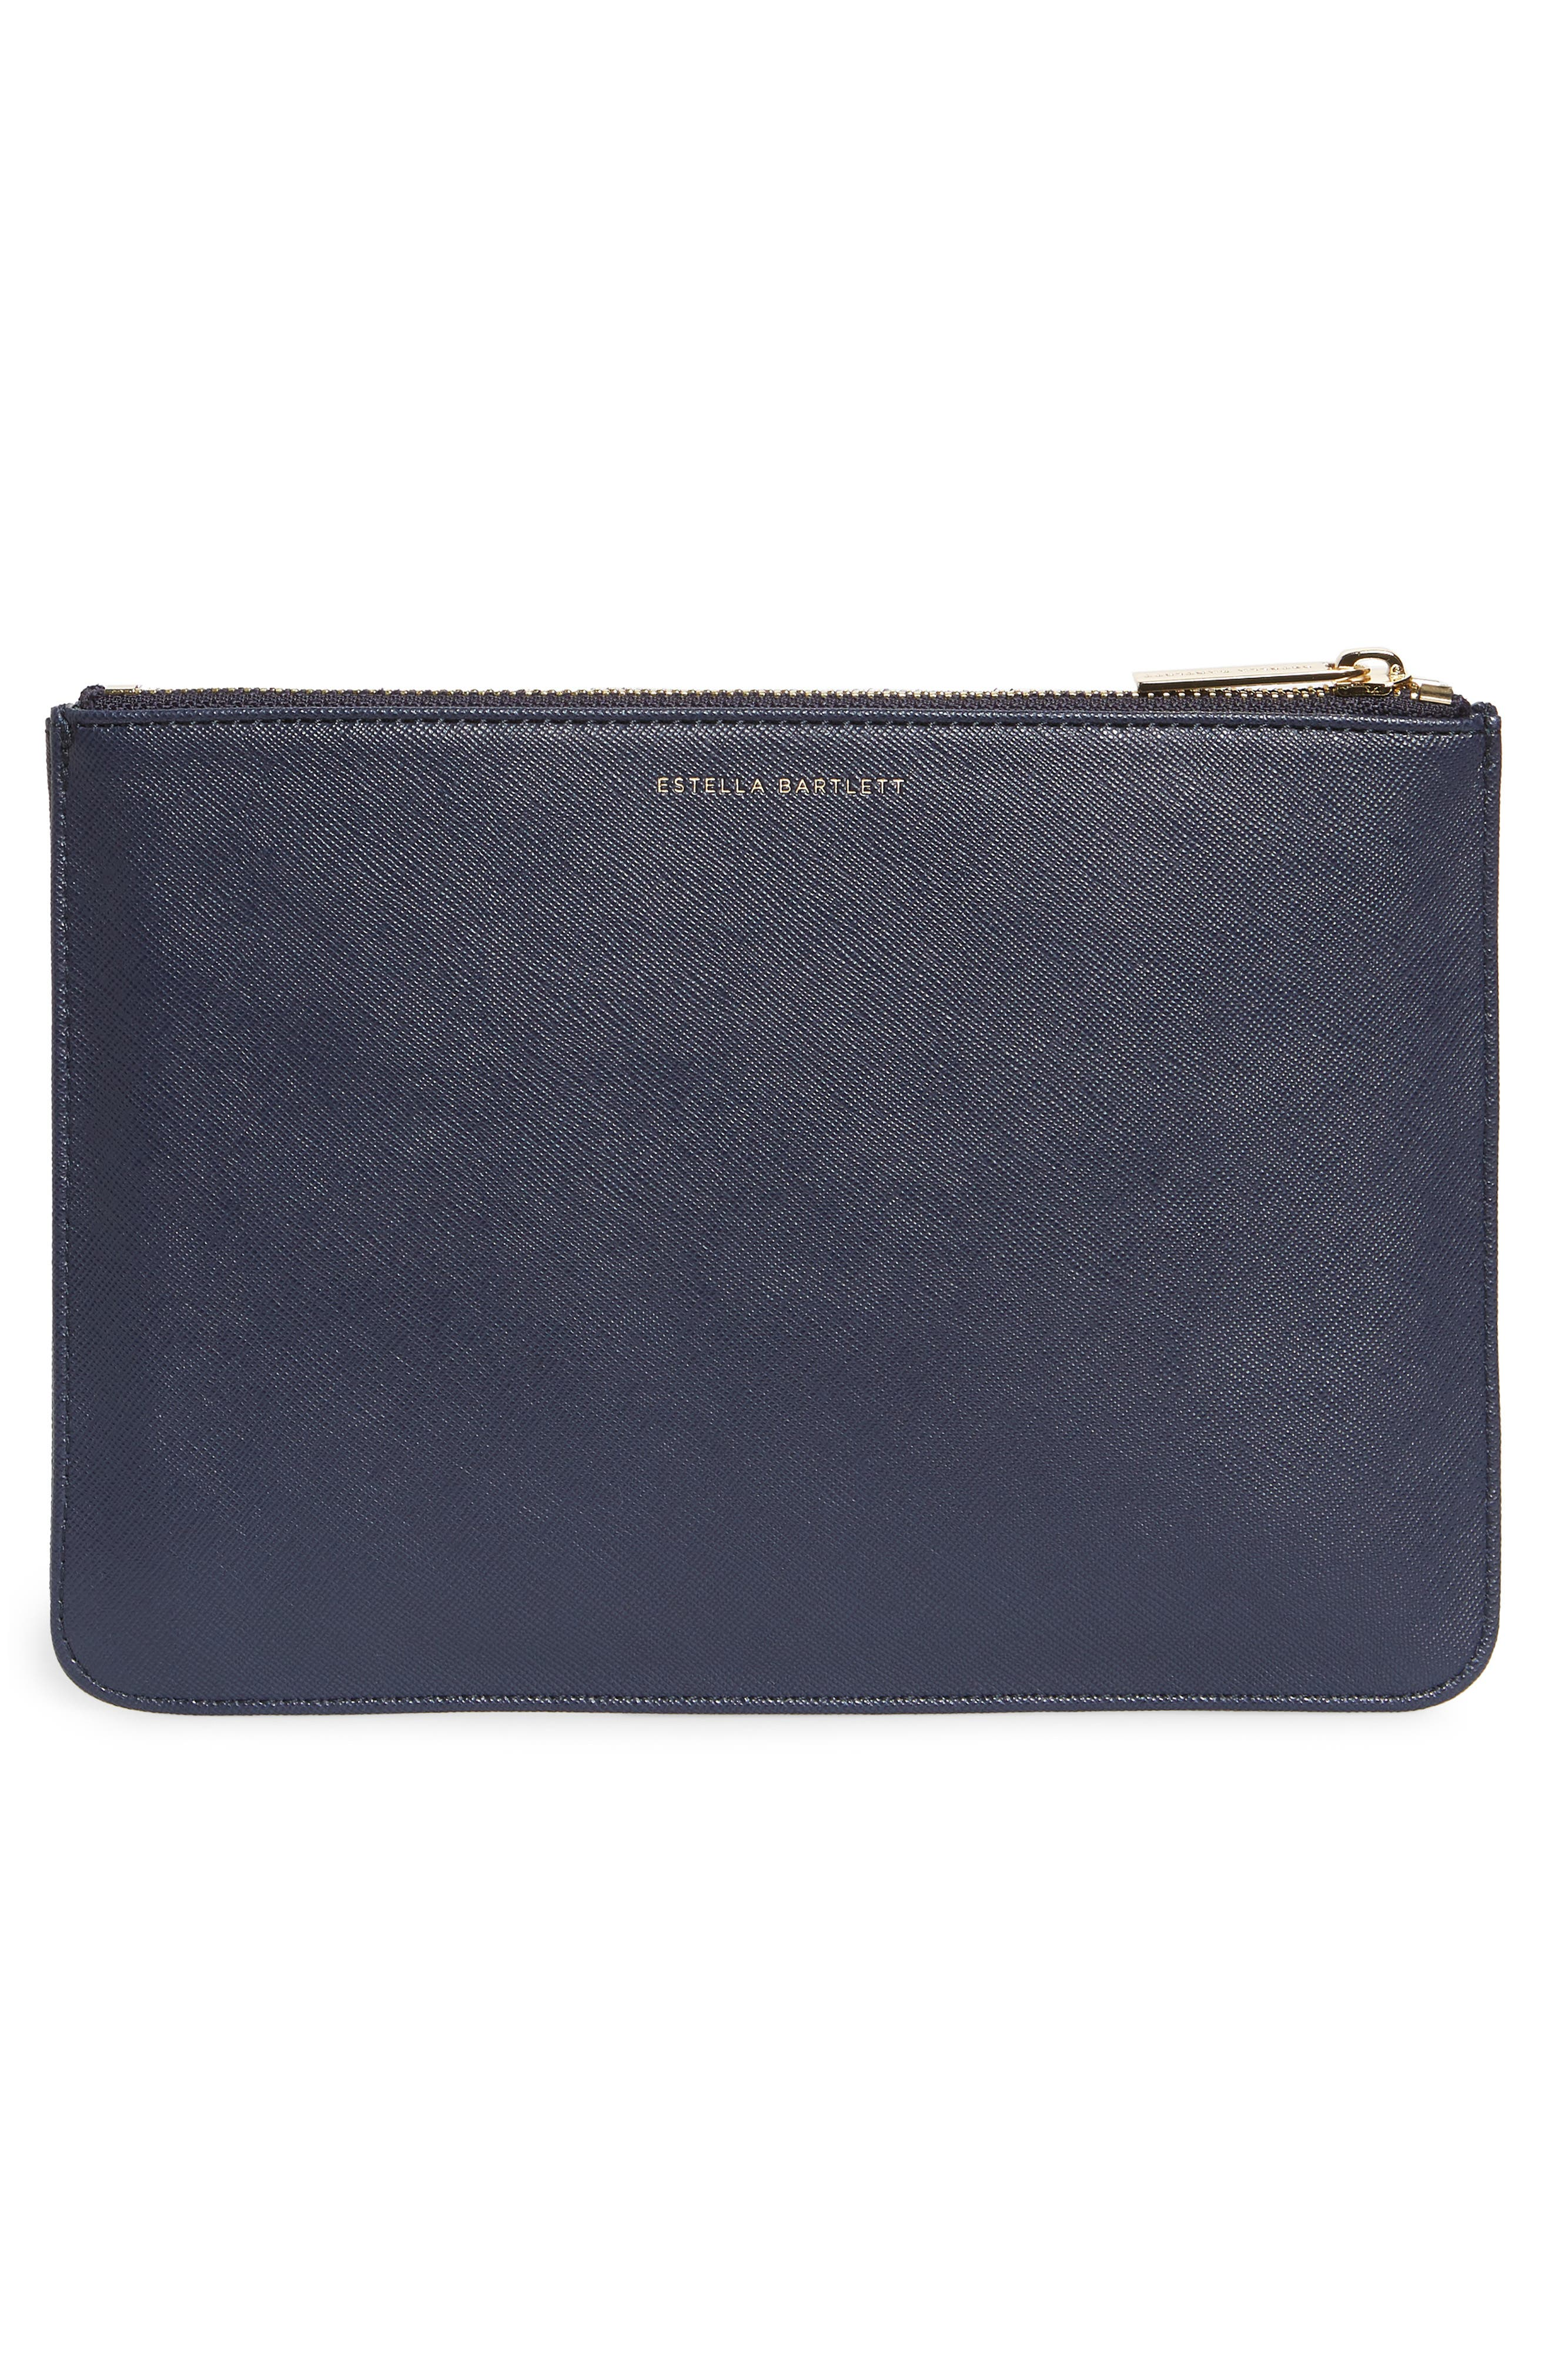 Live As You Dream Medium Faux Leather Pouch,                             Alternate thumbnail 3, color,                             NAVY